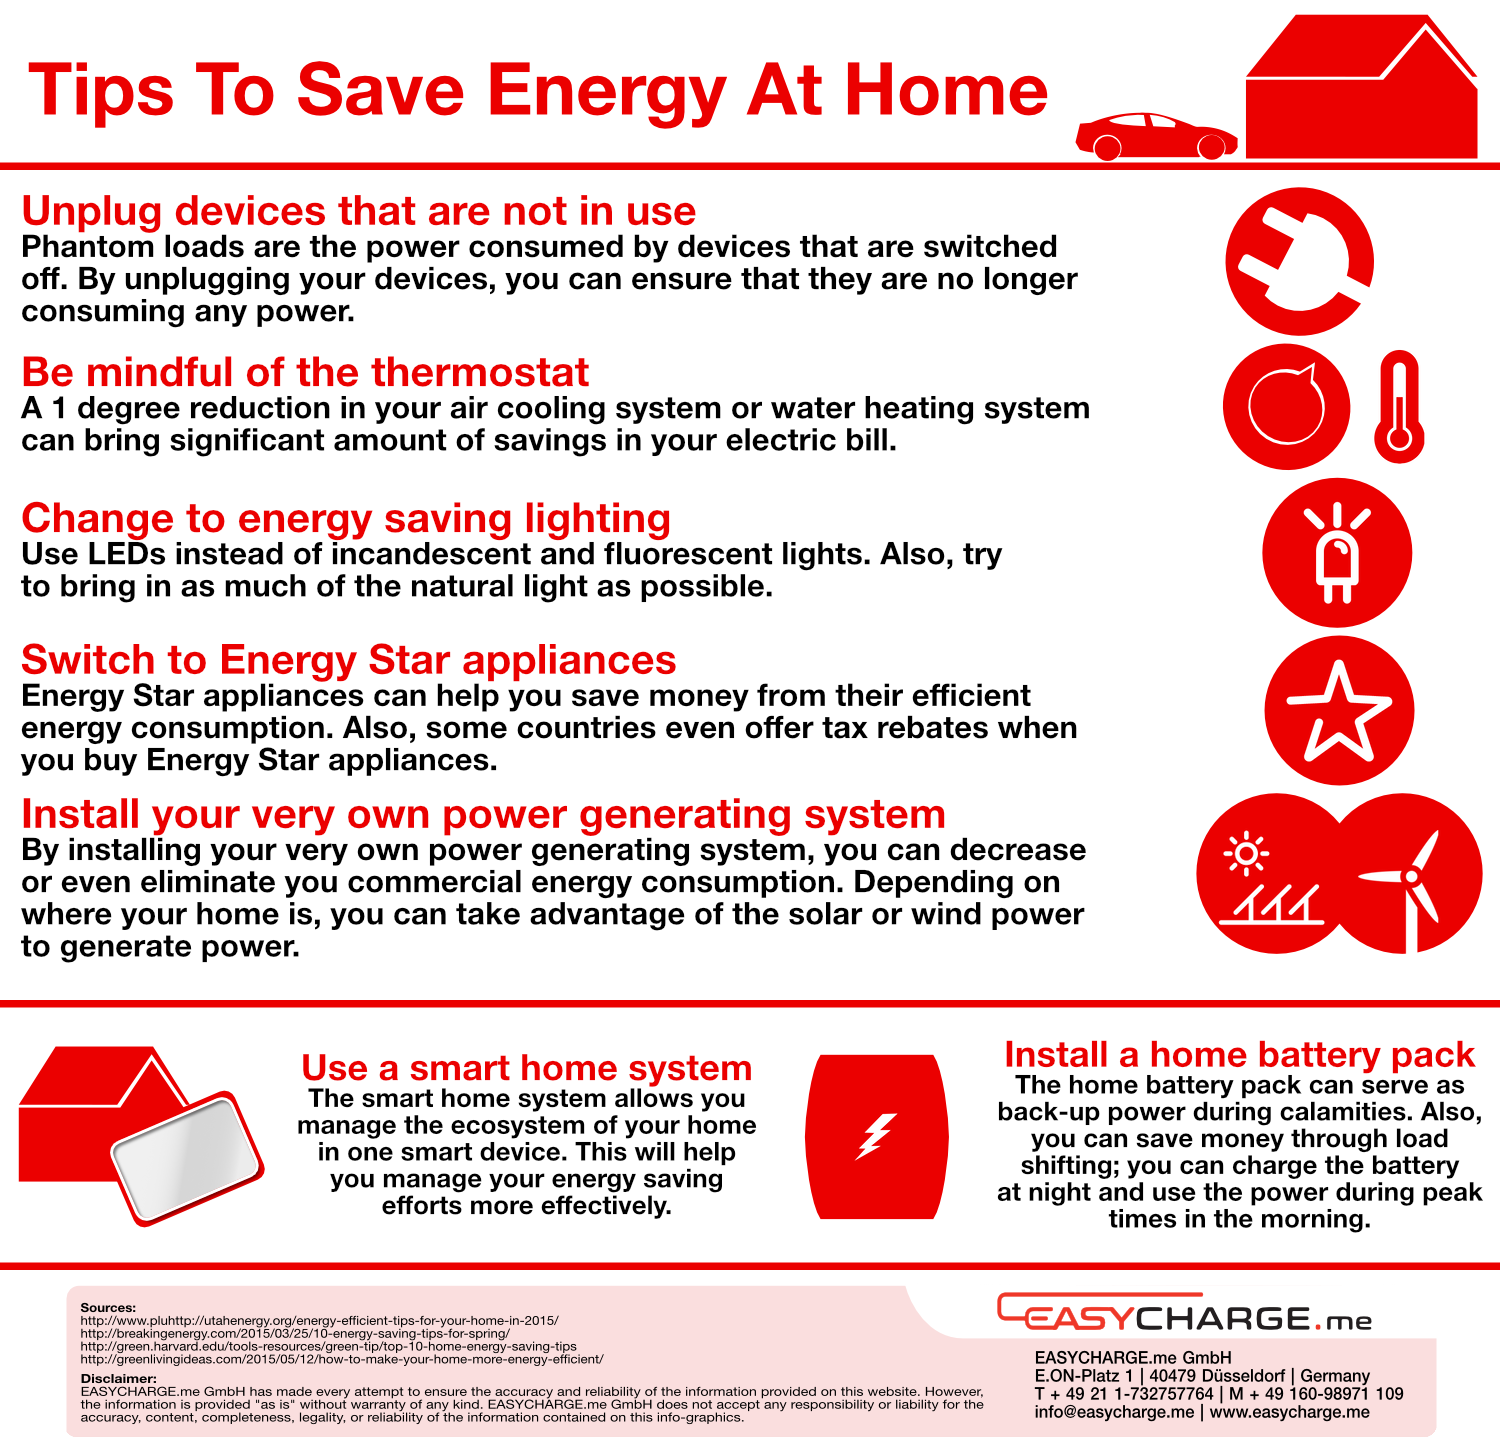 Weekly info-graphics: Tips to Save Energy at Home